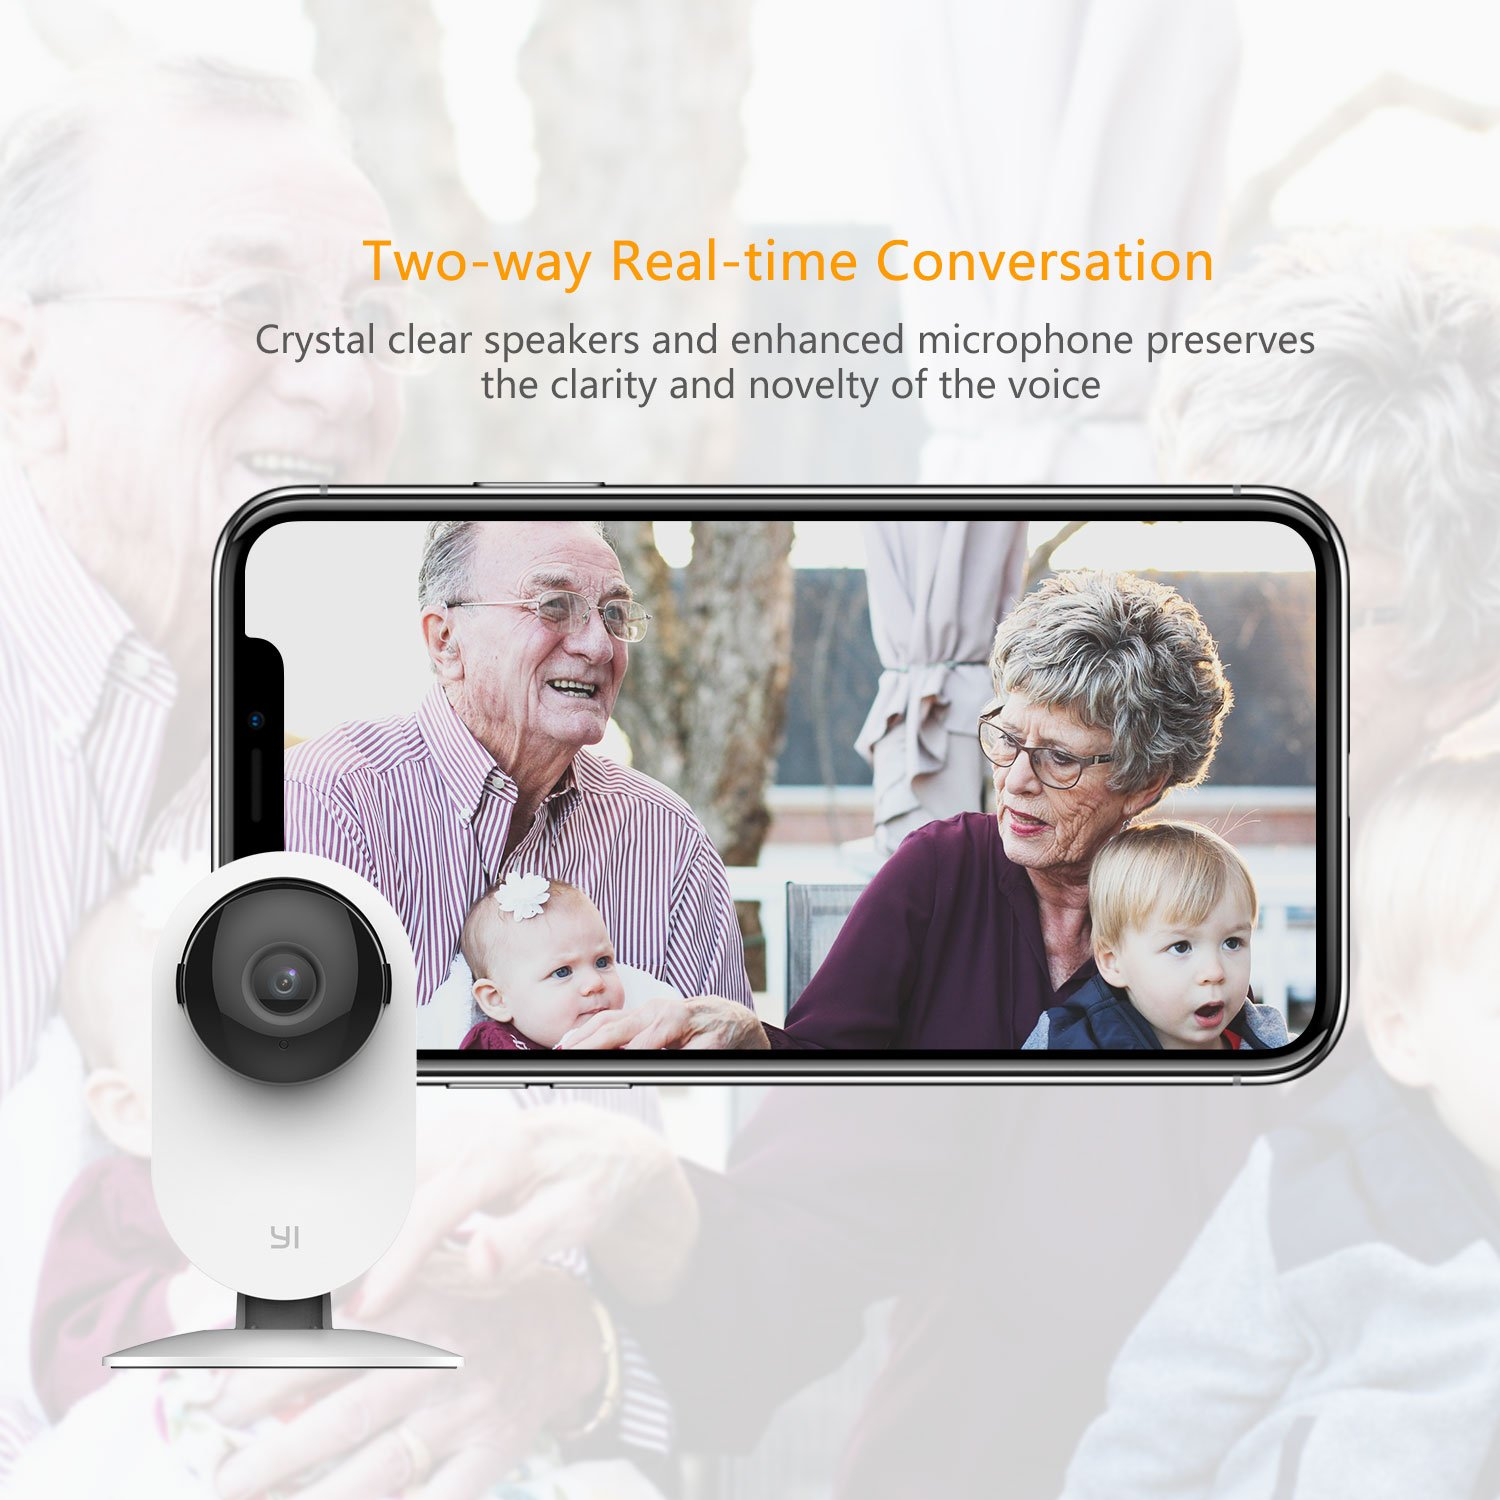 YI Home Camera, Security Camera Wireless IP Surveillance Camera with Night Vision Activity Detection Alert Baby Monitor, Remote Monitor with iOS, Android App - Cloud Service Available (2 Pack) by YI (Image #4)